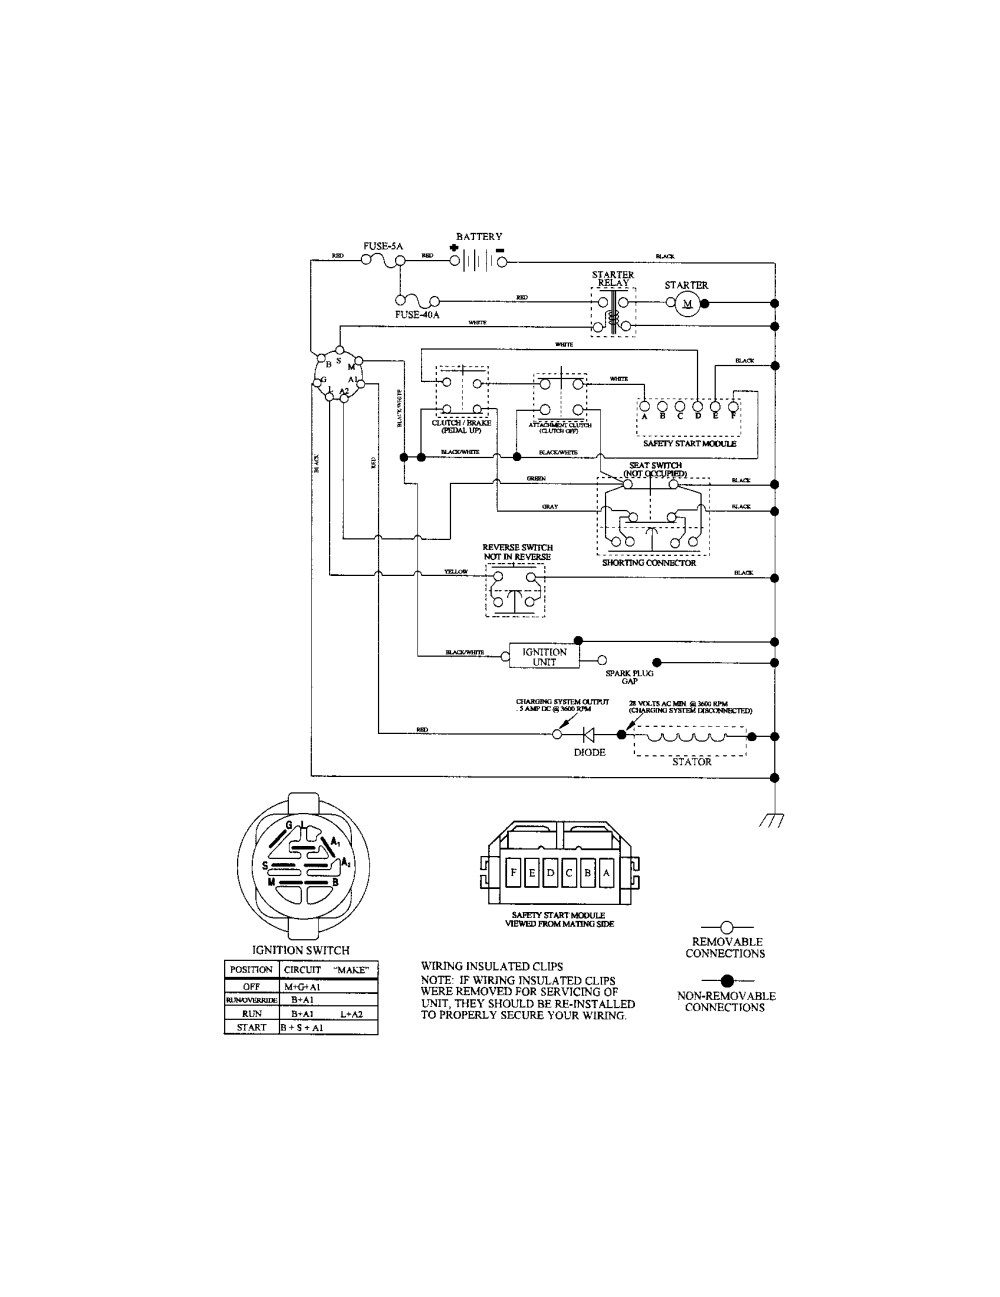 medium resolution of model wiring craftsman diagram tractor 917272674 wiring diagrams model wiring craftsman diagram tractor 917272674 wiring diagram